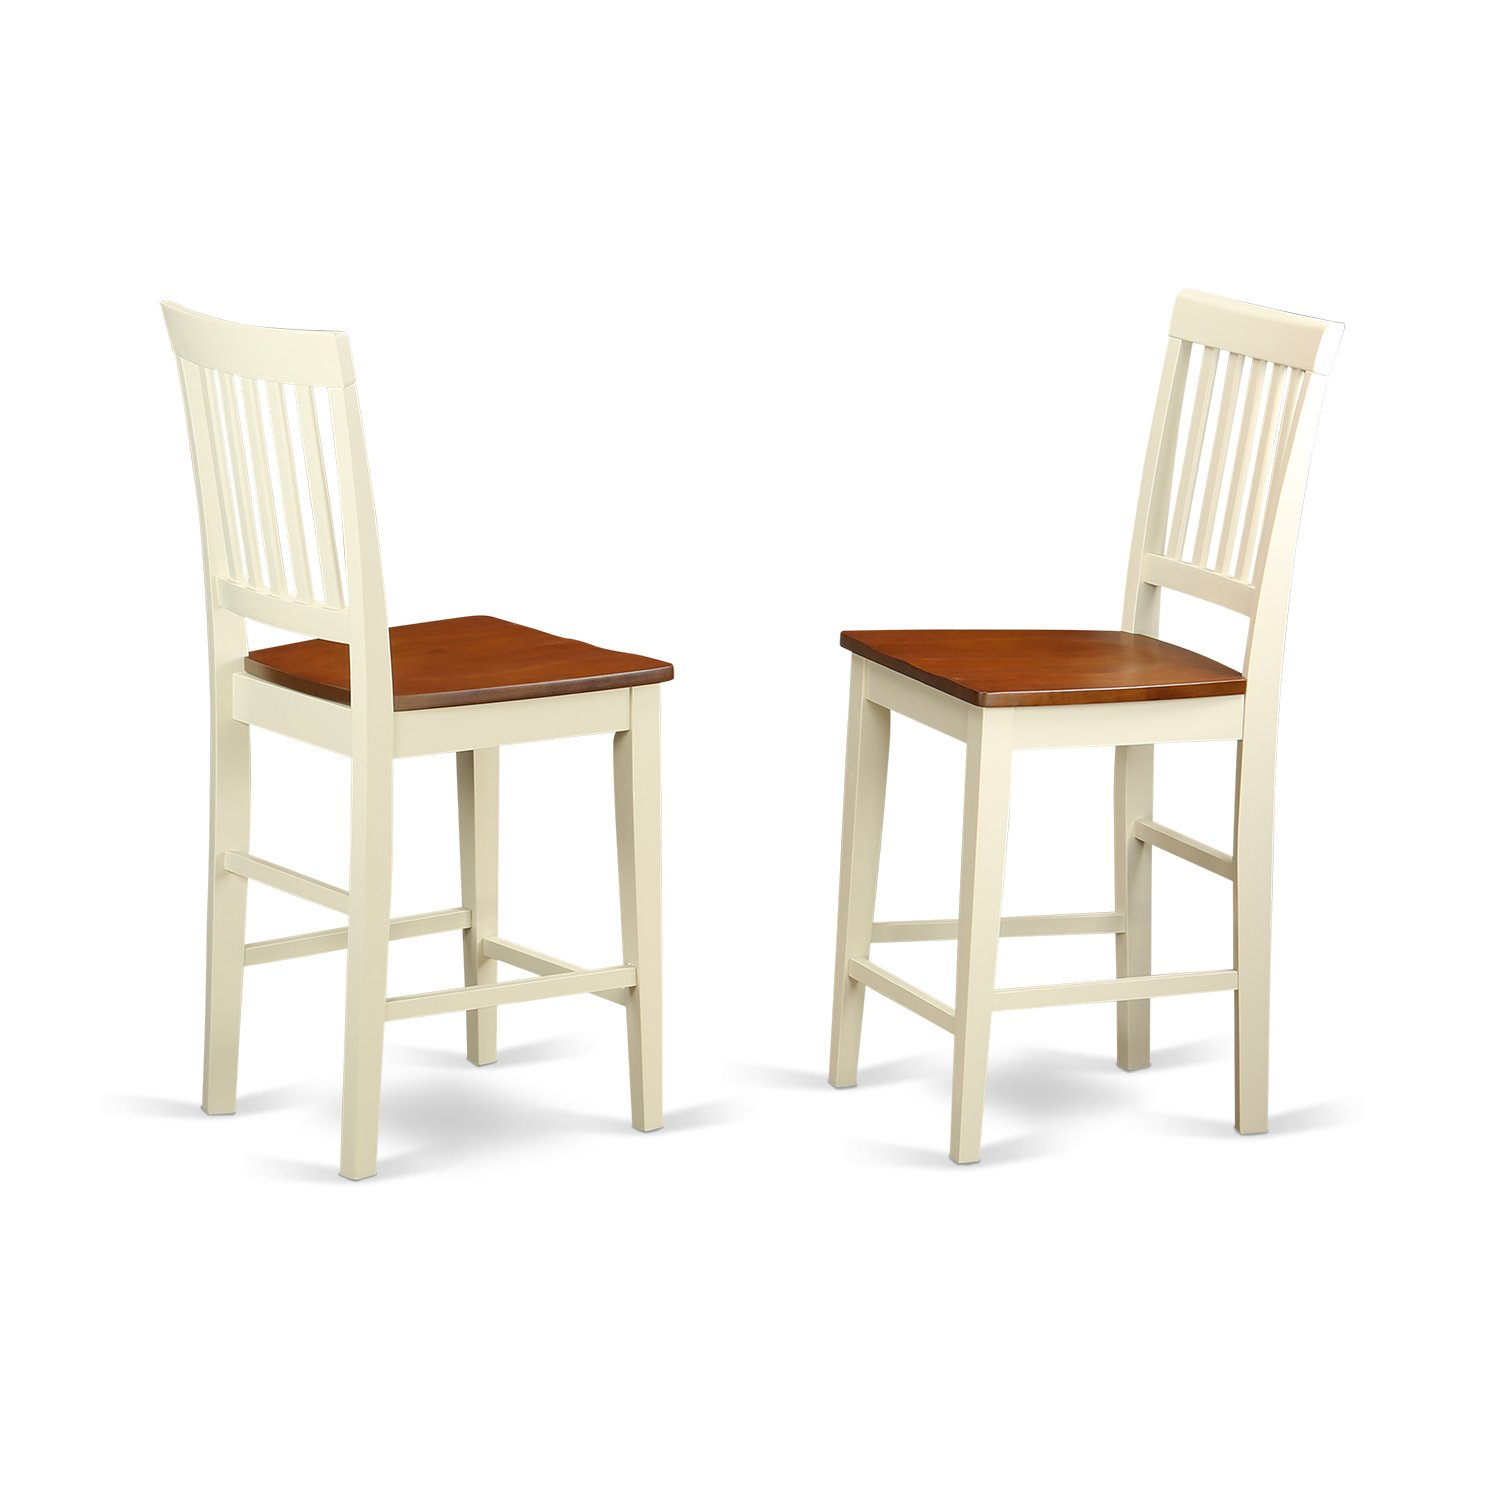 East West Furniture Counter Height Stool Set with Wood Seat, Buttermilk/Cherry Finish, Set of 2 by East West Furniture